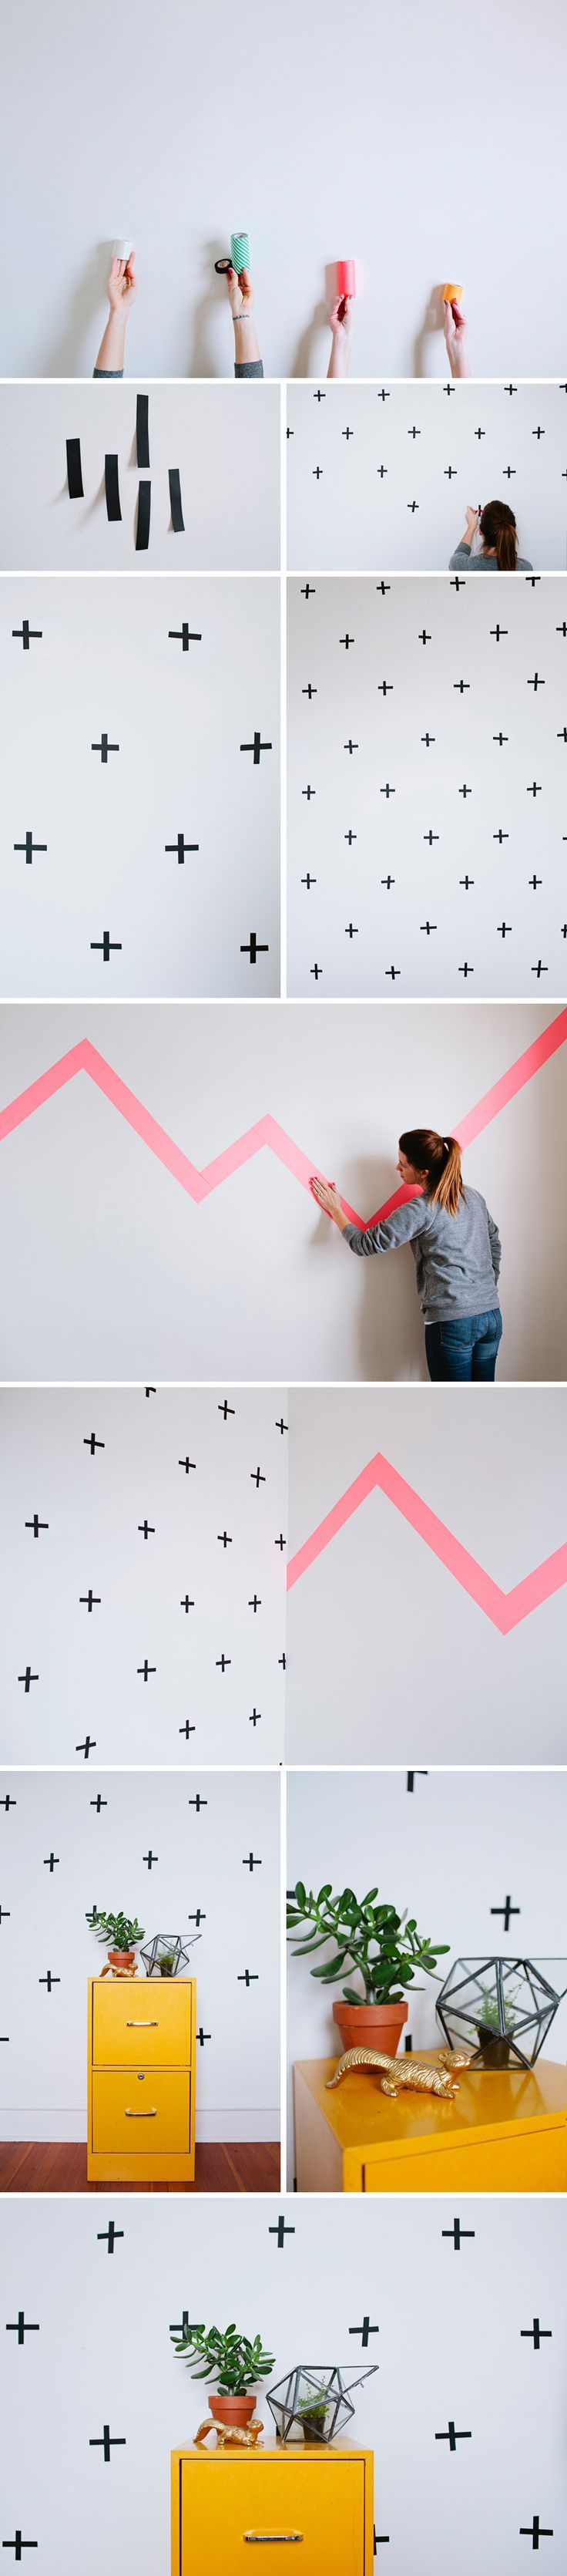 washi tape wallpaper diy puzzle box pinterest ideen deko und kinderzimmer. Black Bedroom Furniture Sets. Home Design Ideas